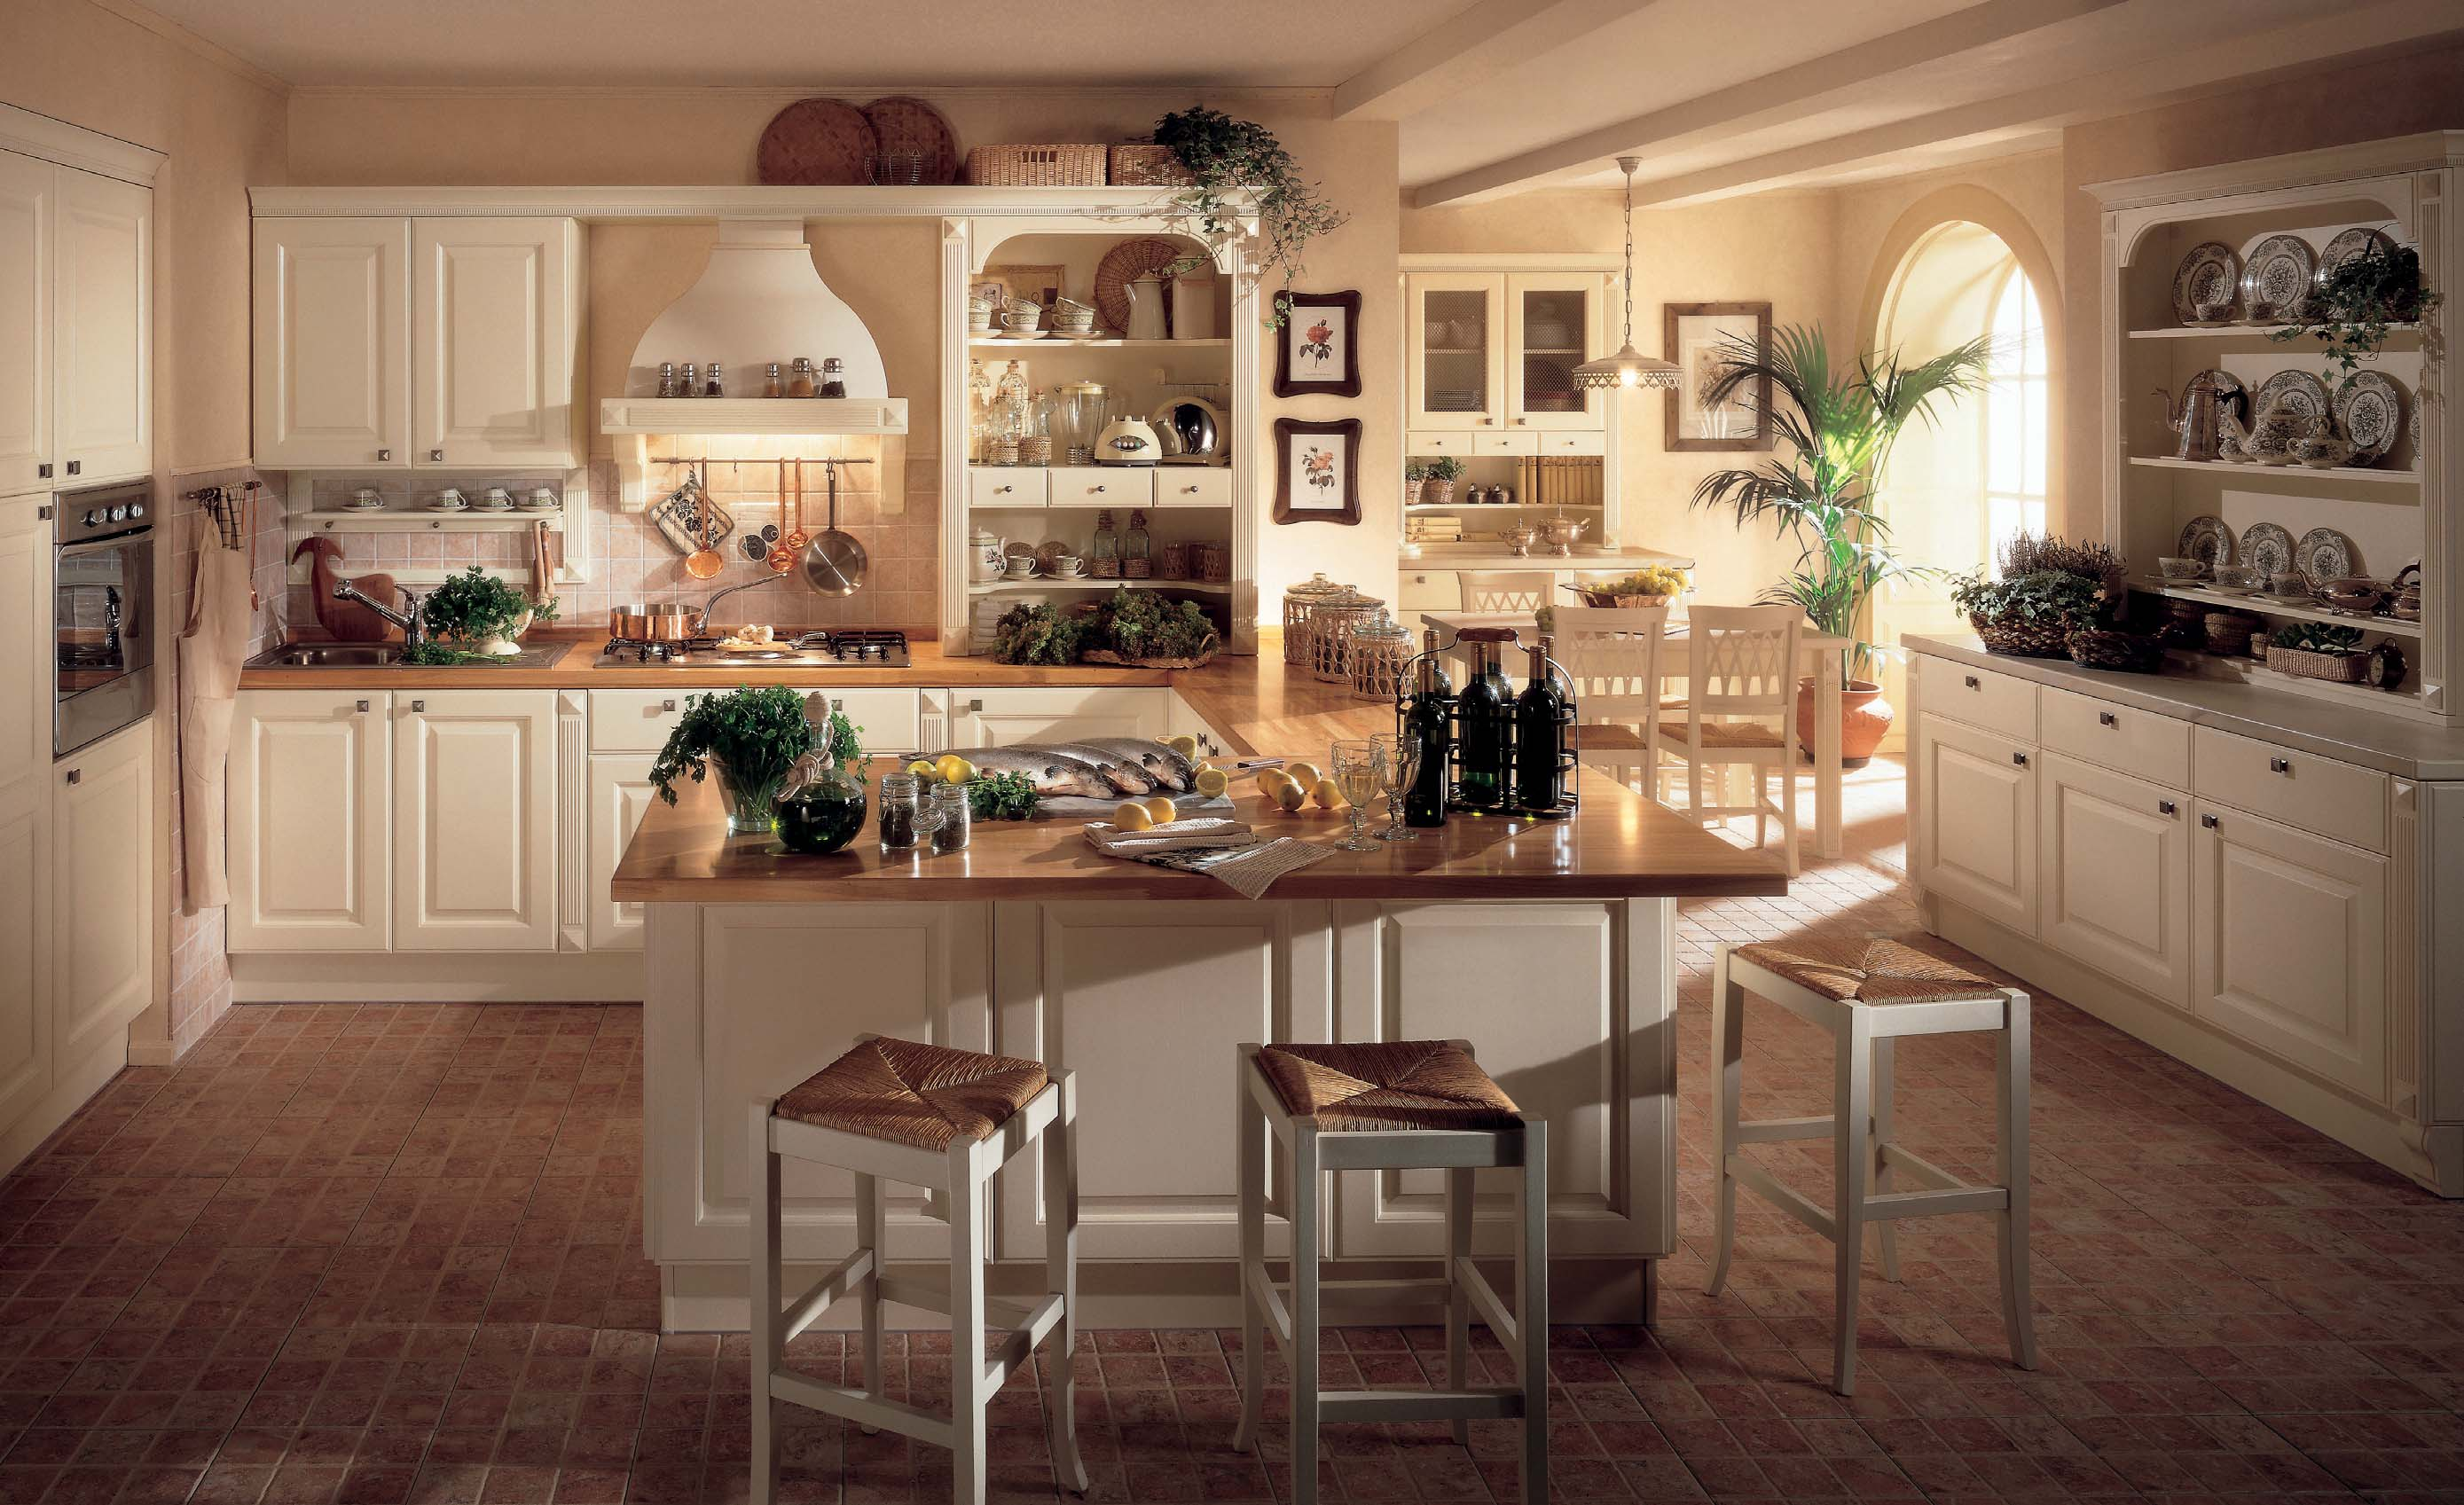 Athena classic kitchen interior inspiration for Classic style kitchen ideas